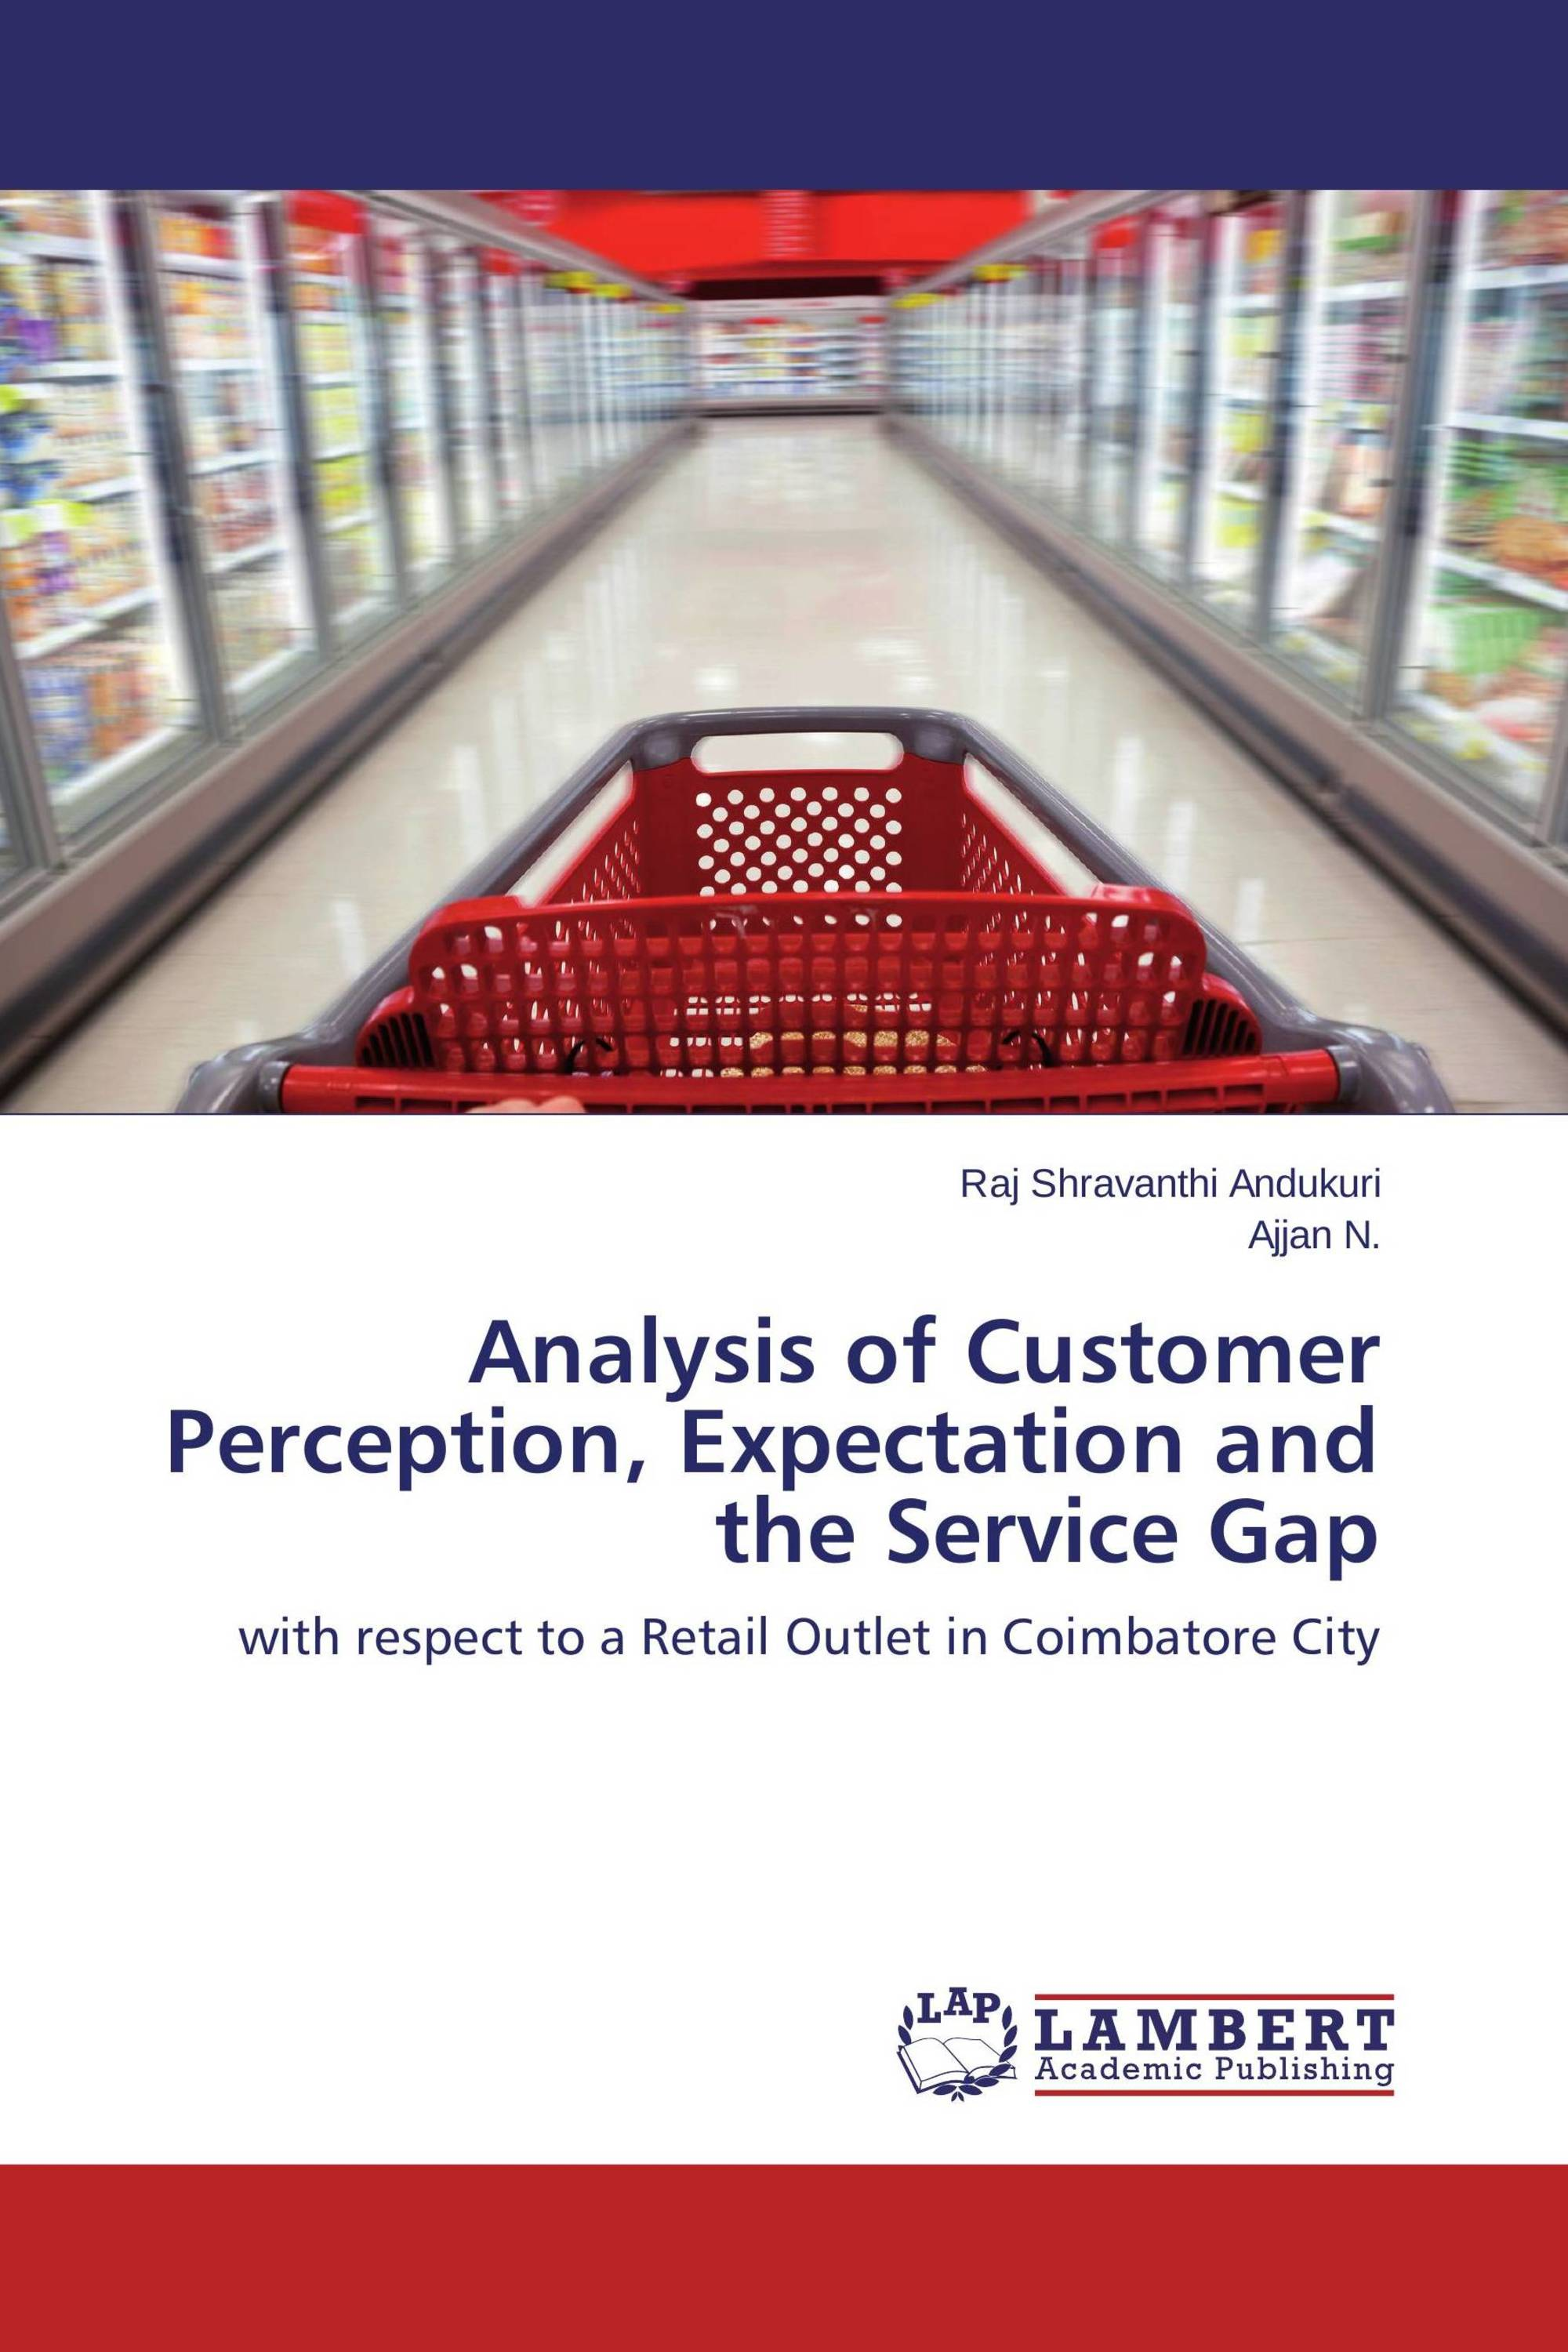 customer perception thesis Analysis of customer perception and expectation and the retail service gap at a hypermarket in coimbatore city.